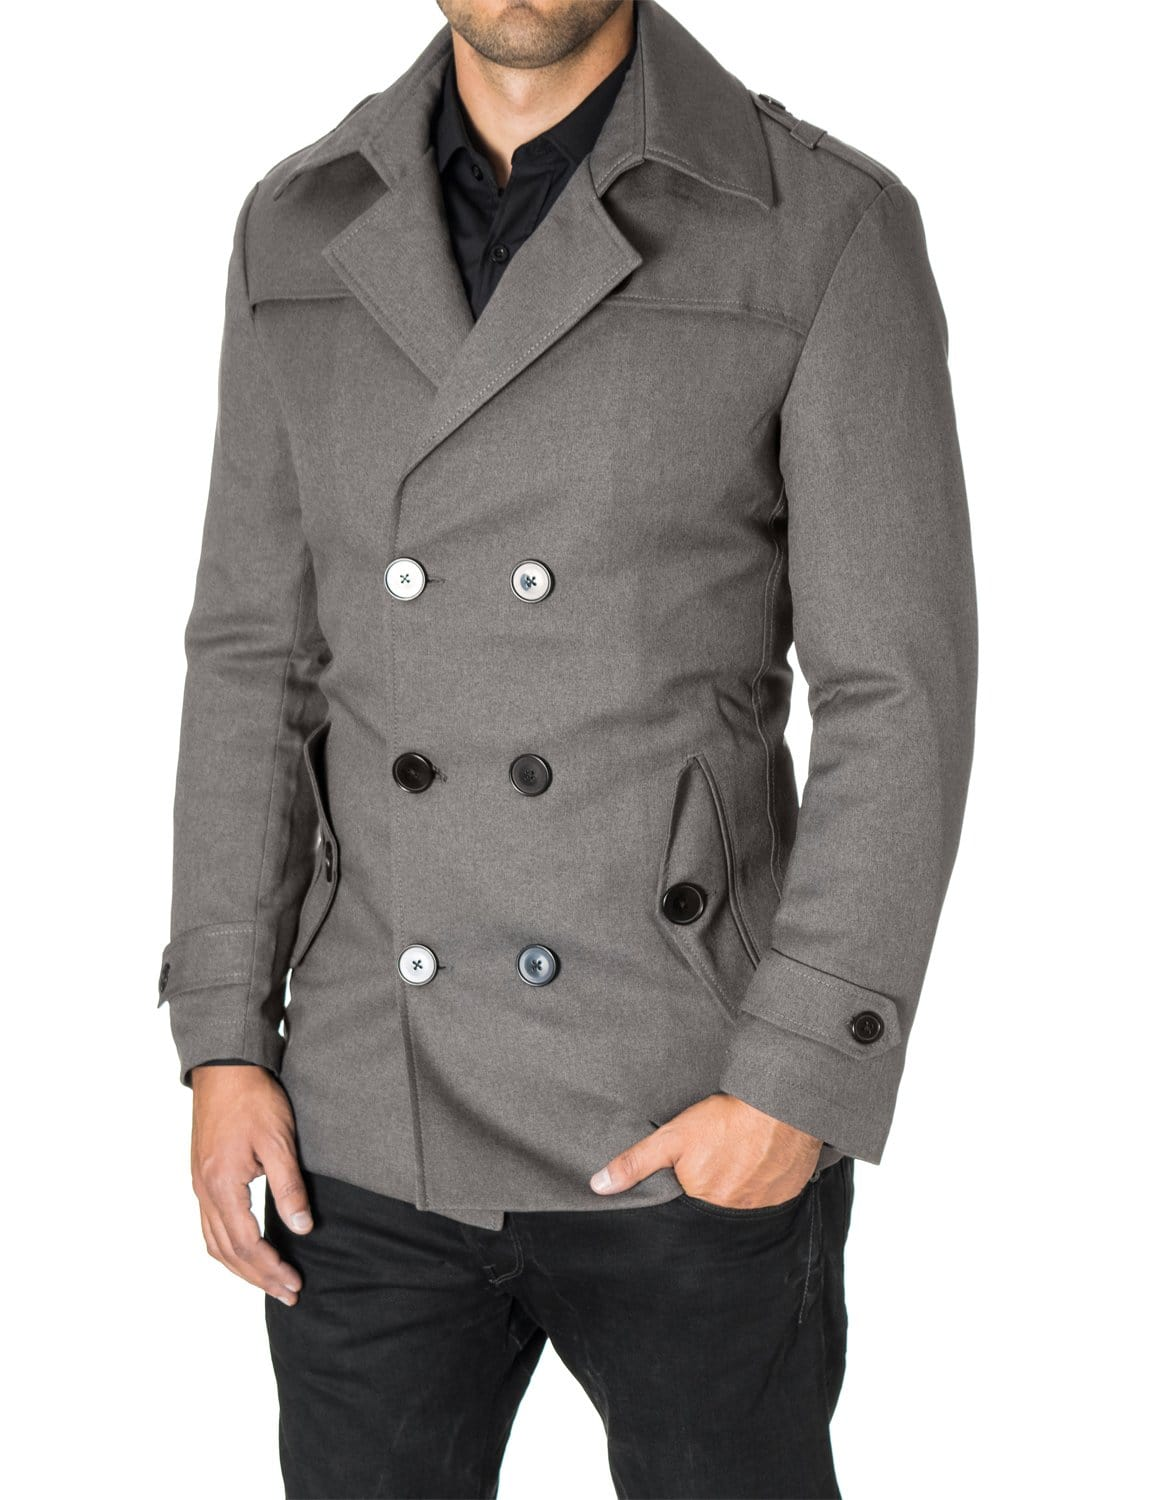 Mens slim fit double-breasted winter coat gray (MOD13538C) - MODERNO